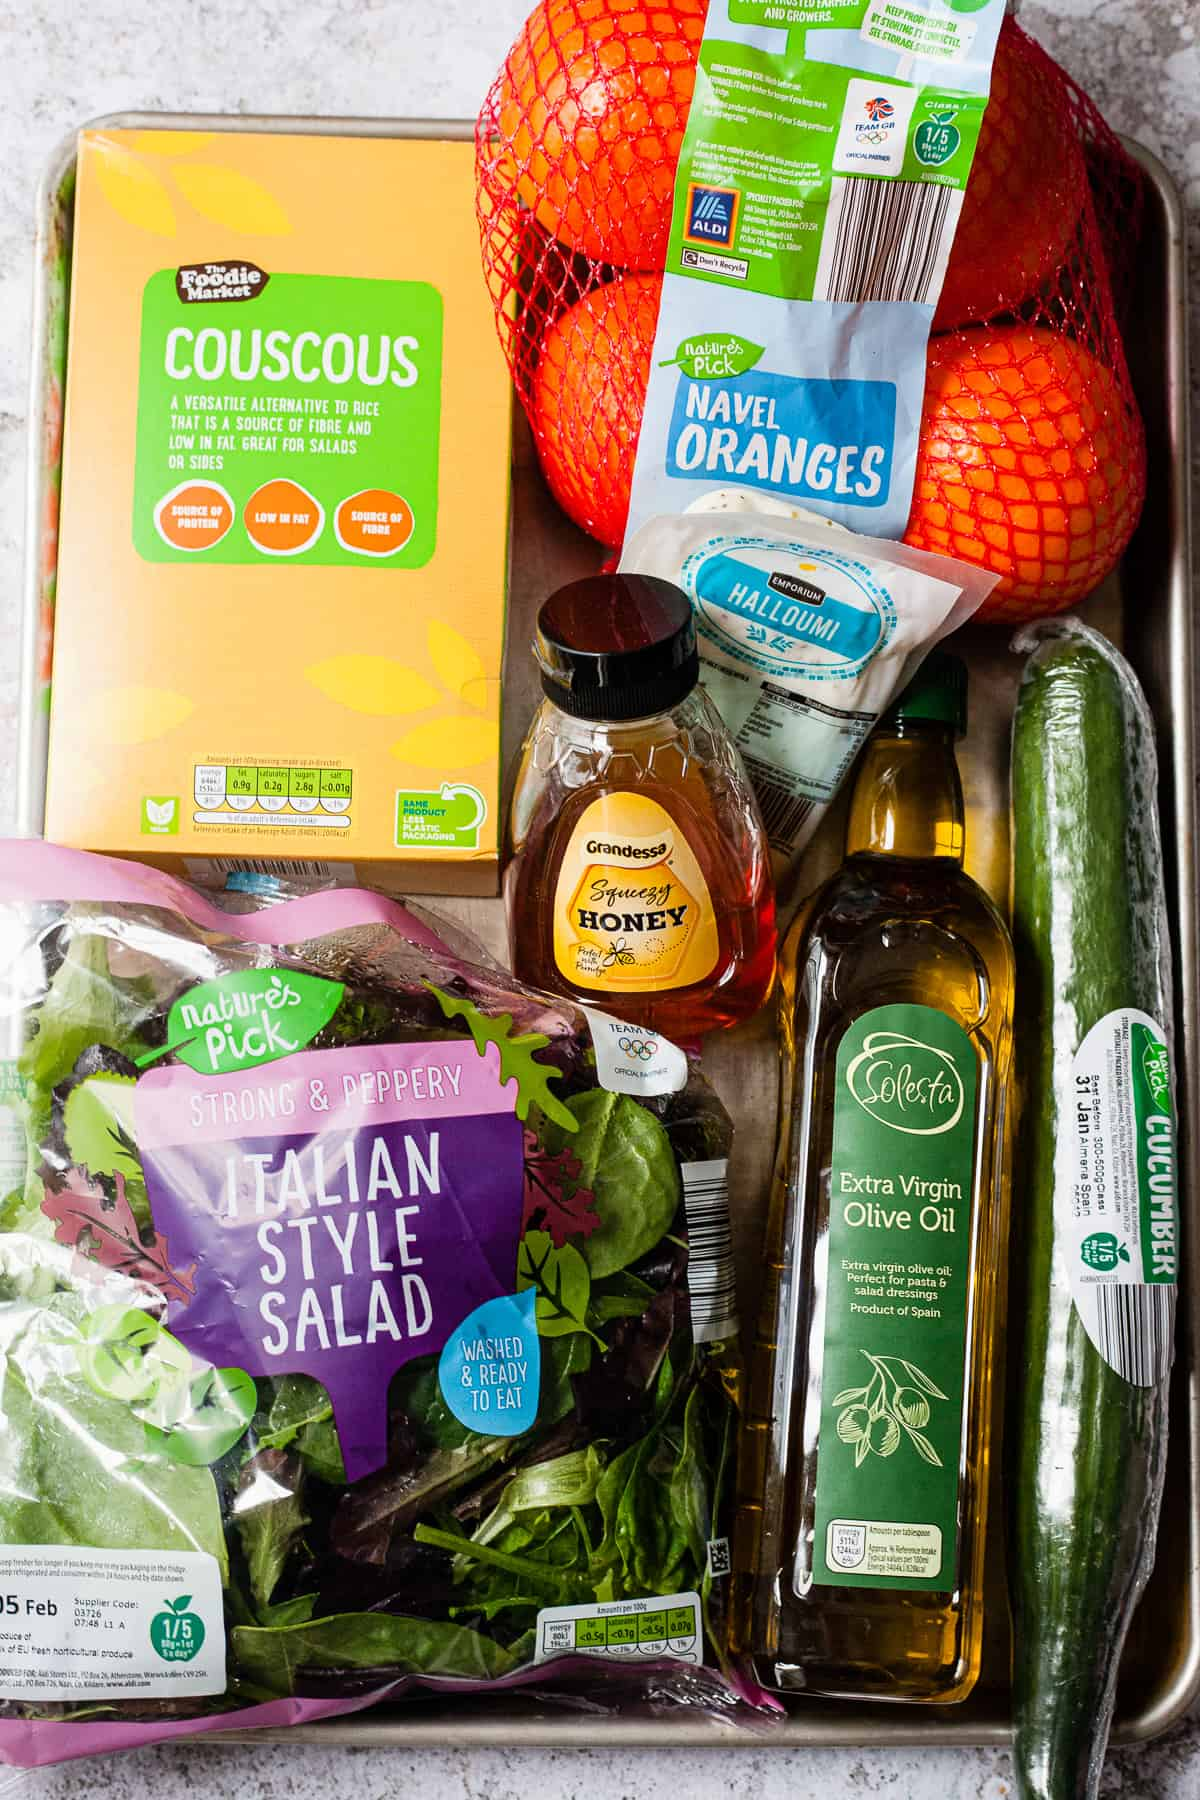 Ingredients from Aldi UK on a baking tray to make halloumi salad